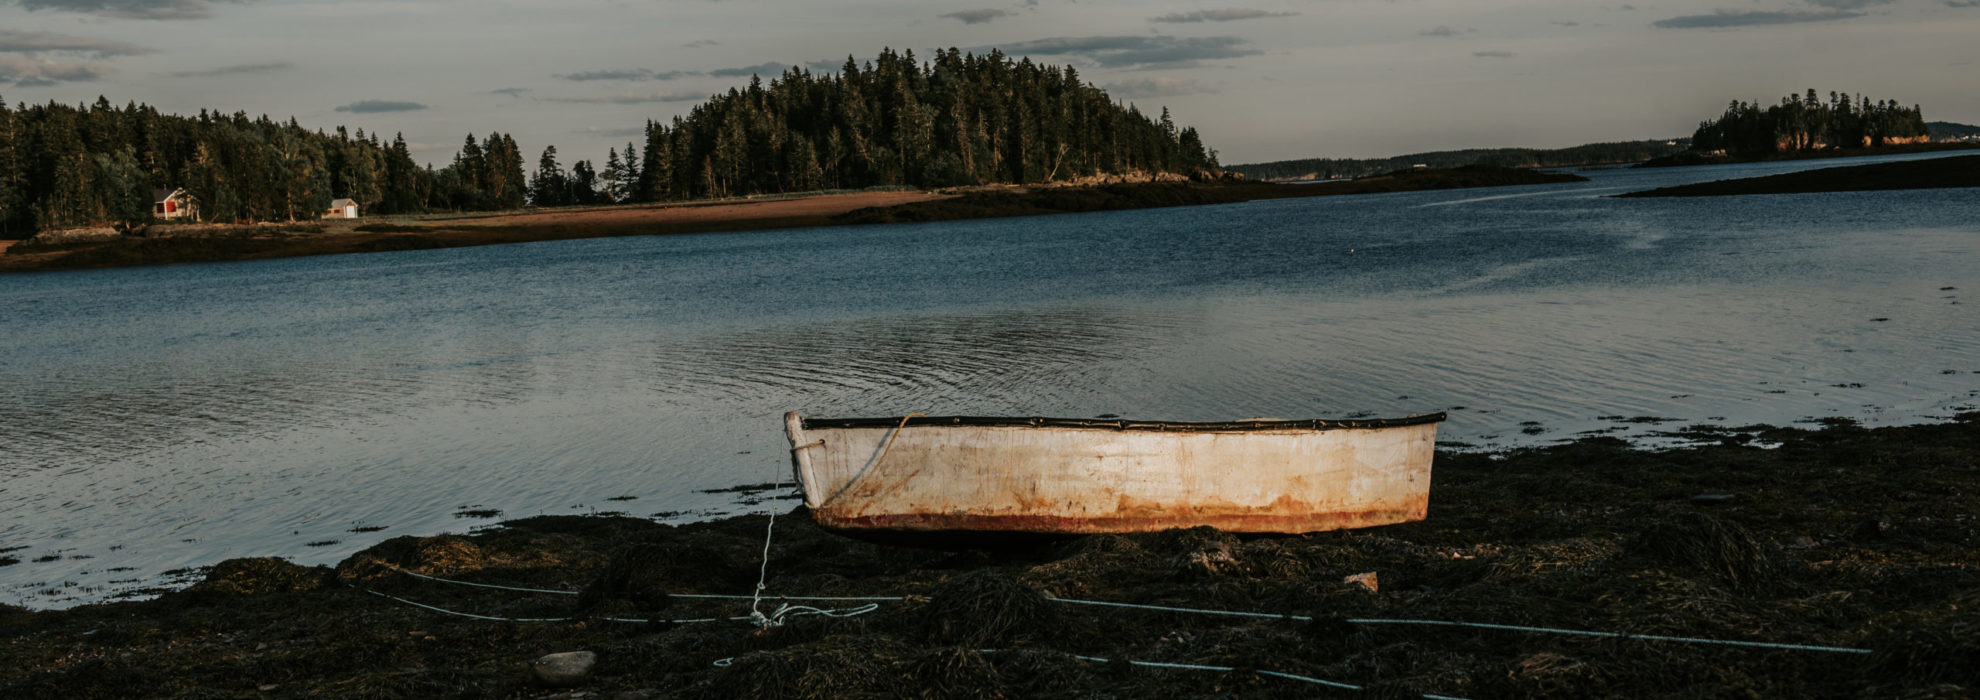 dingy on land at sunset